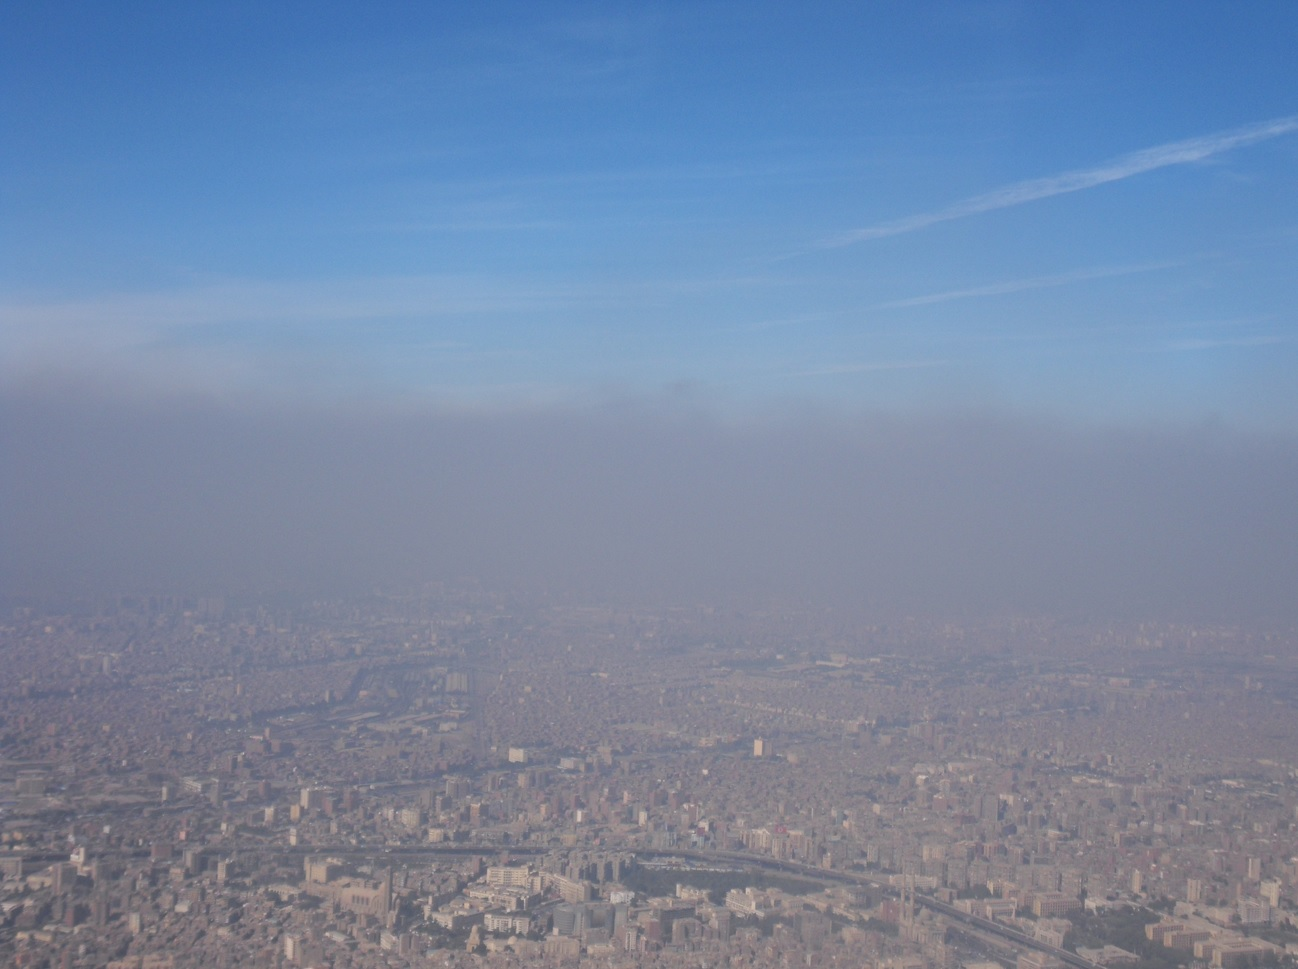 Black cloud as seen from an airplane over Cairo in 2013.